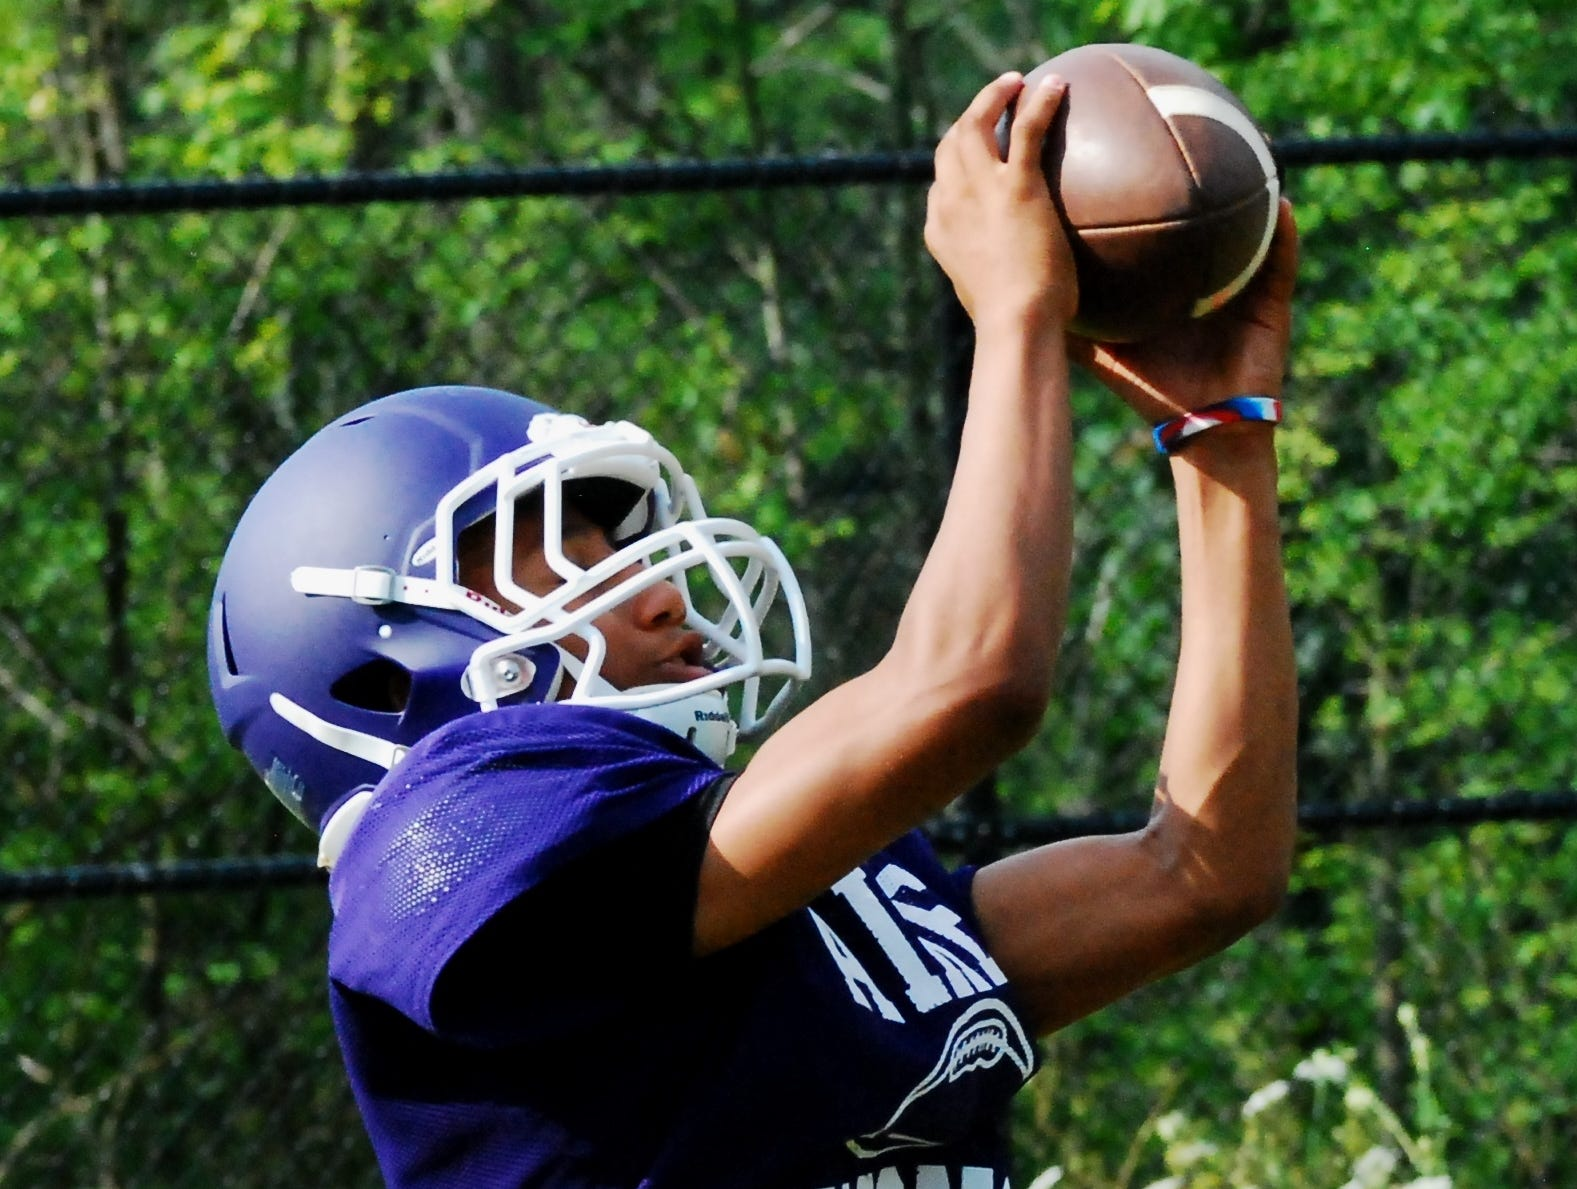 Aiken sophomore receiver Dequan Freeman looks in a completed pass for a score during 7-on-7 practice.